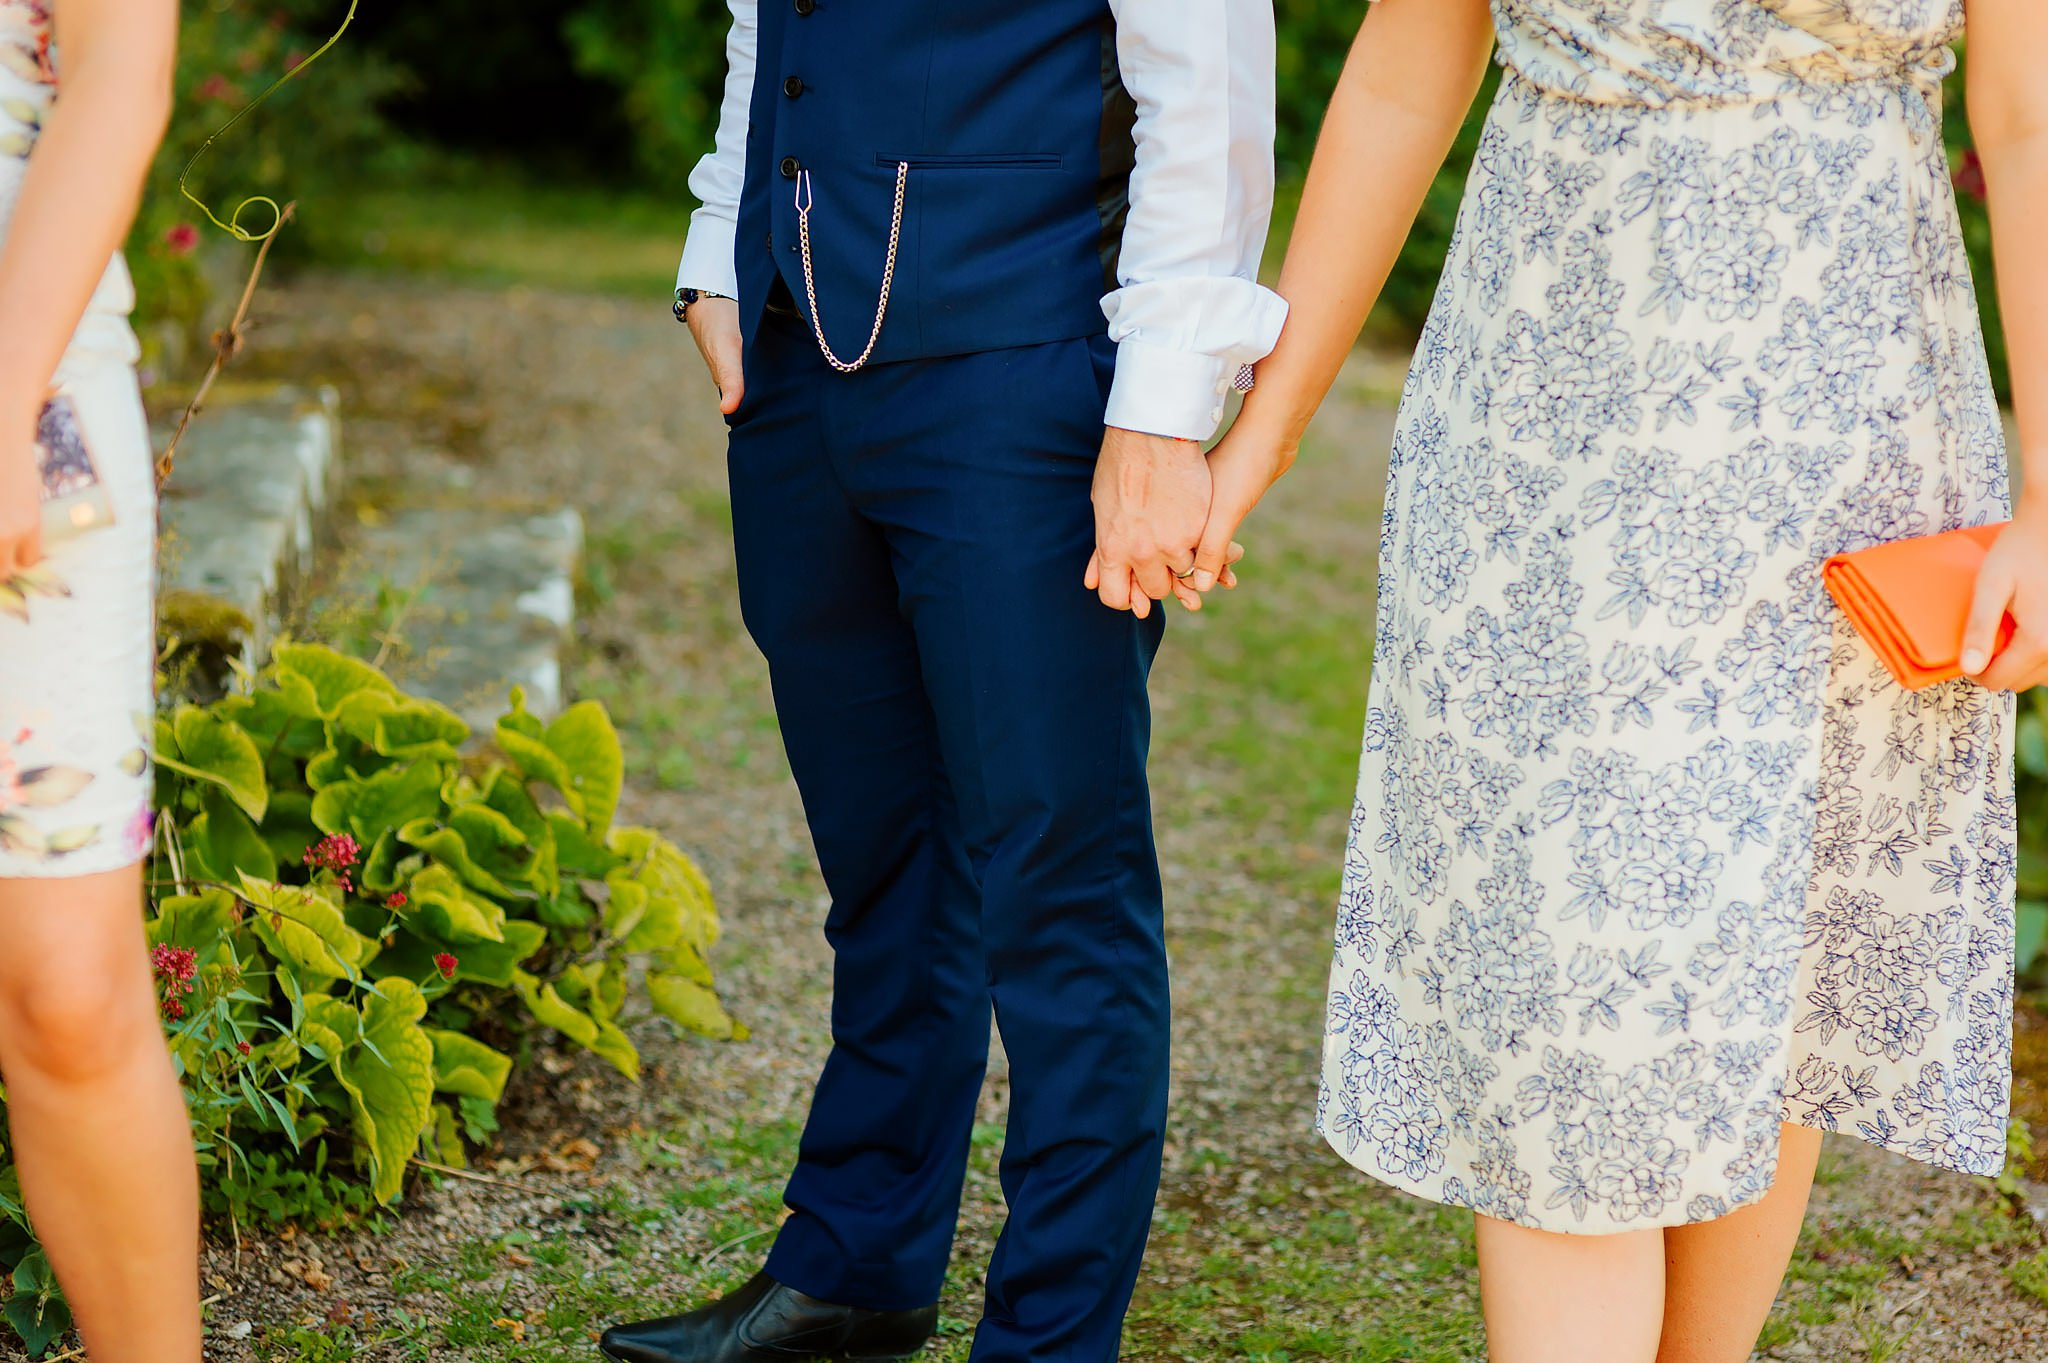 Wedding photography at Hellens Manor in Herefordshire, West Midlands | Shelley + Ian 69